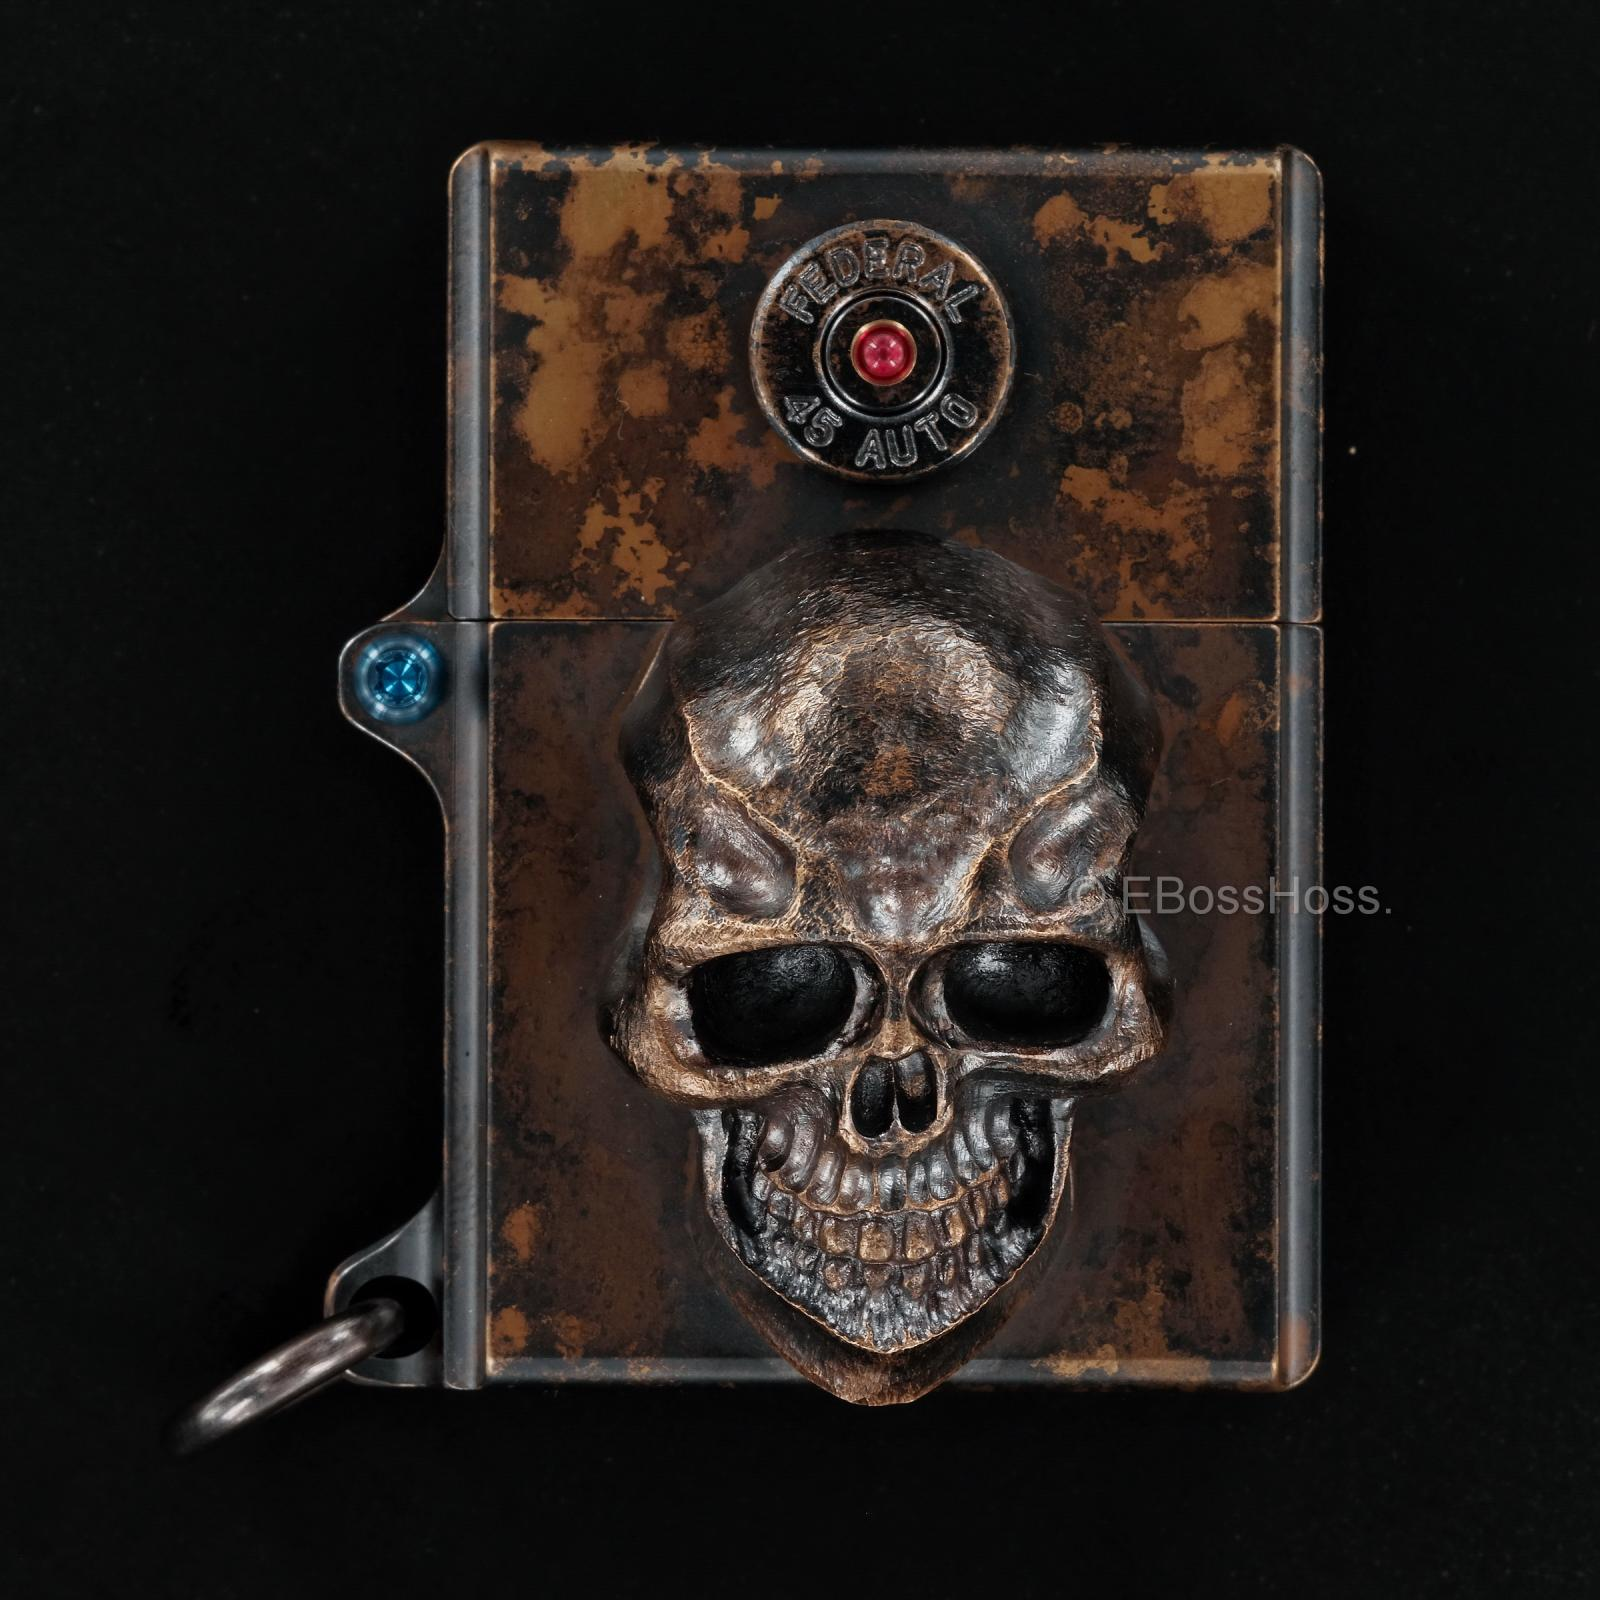 Steel Flame 3D Sledge Lighter - ONE - with XXL Darkness Skull & Vigilant 45 Casing -- by Derrick Obatake